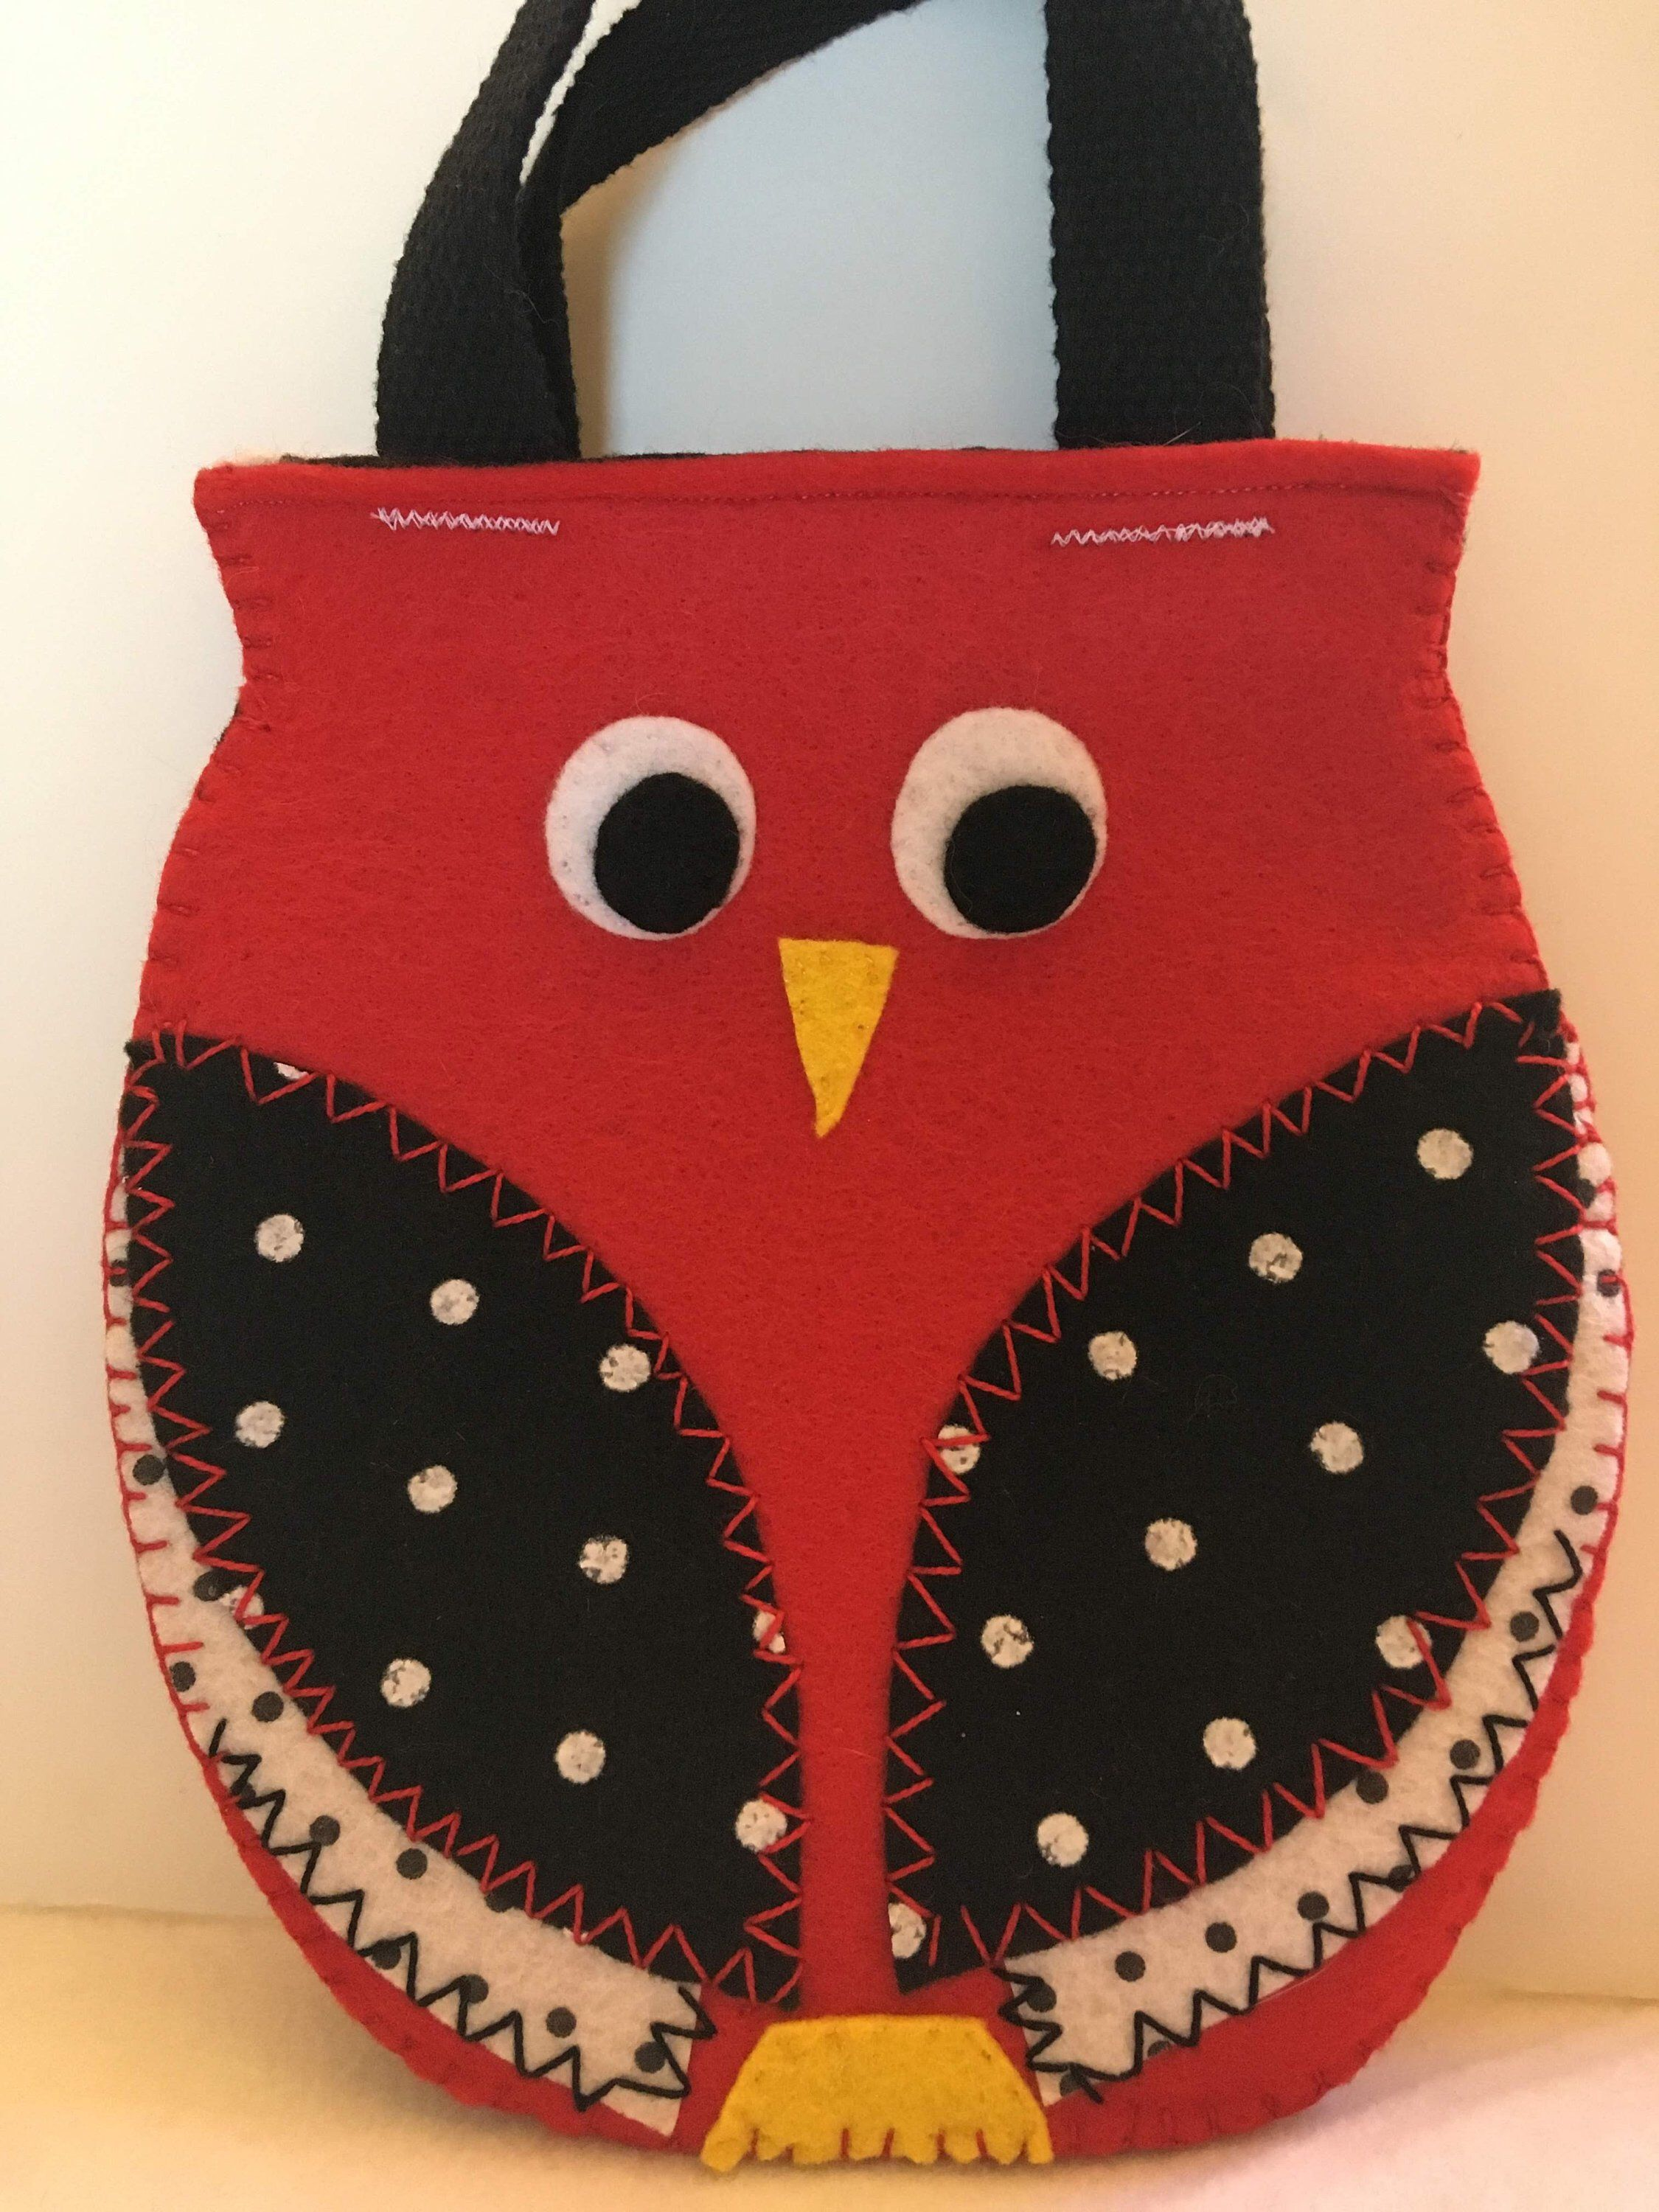 Excited to share this item from my etsy shop owl bag